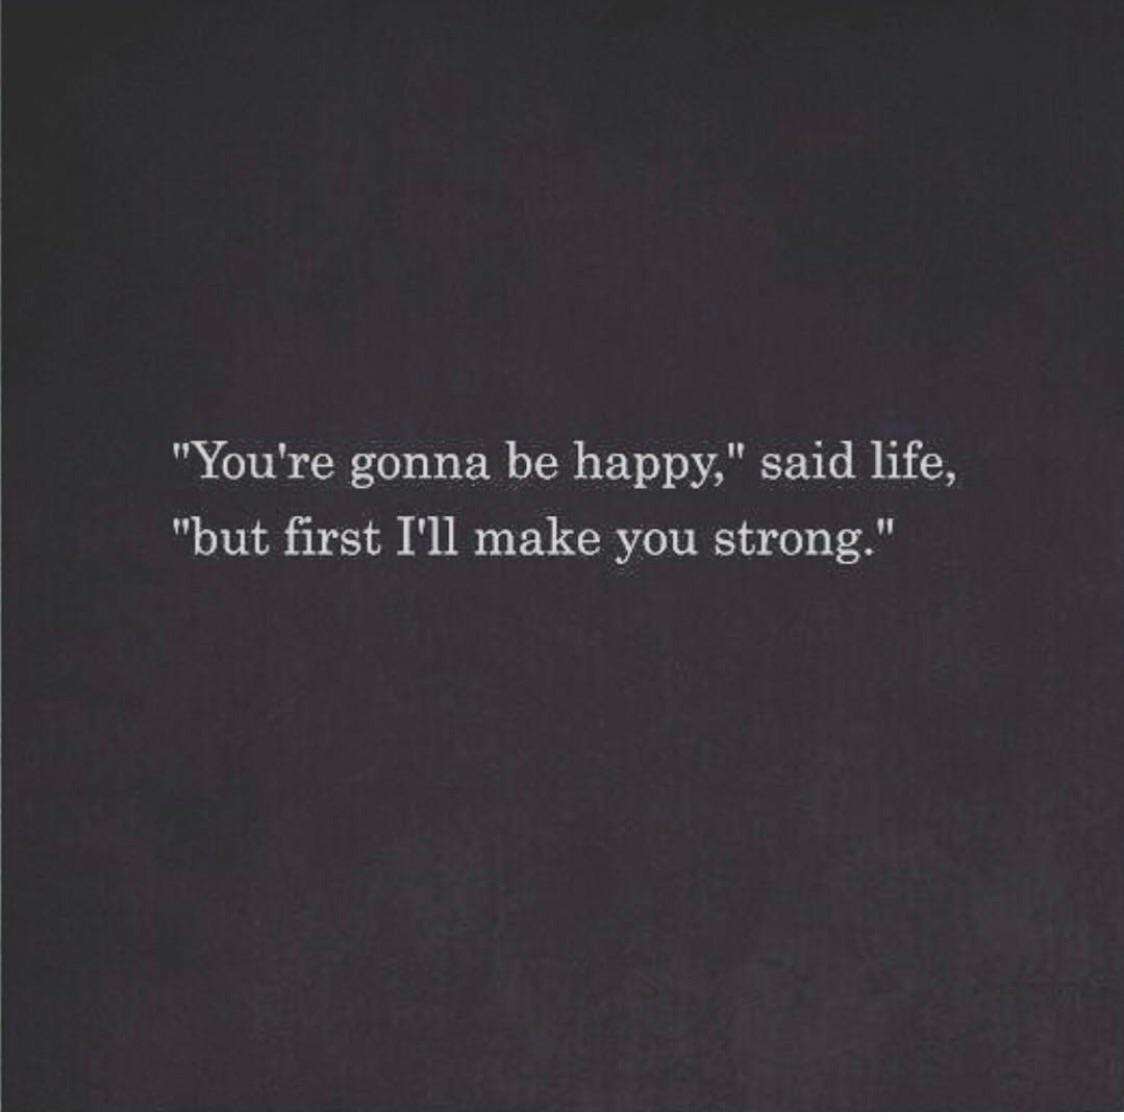 [Image] You're gonna be happy..